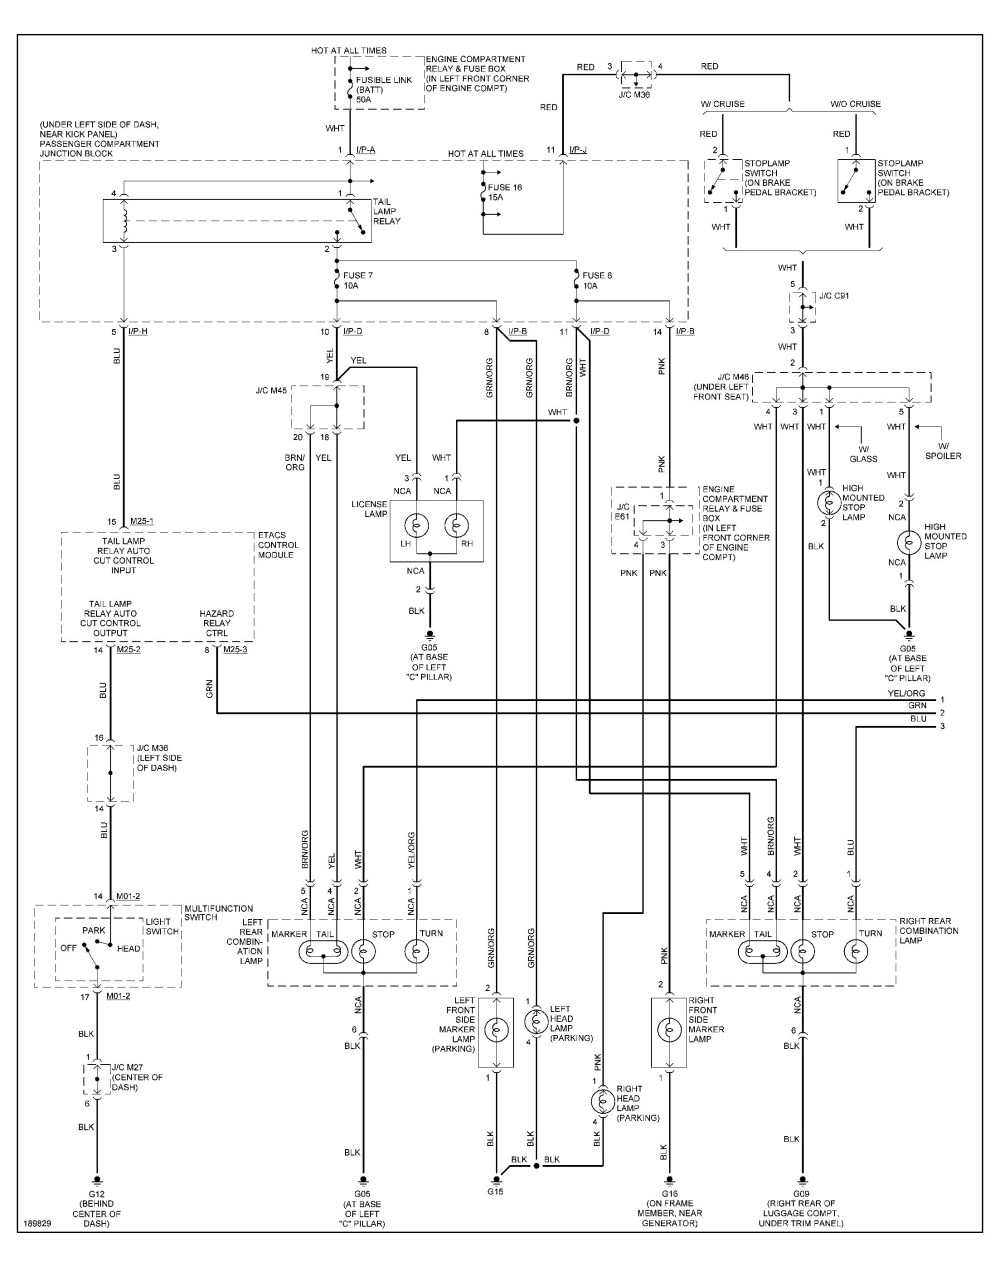 medium resolution of 2005 hyundai wiring diagram wiring diagram2005 hyundai wiring diagram everything wiring diagram2005 hyundai wiring diagram data